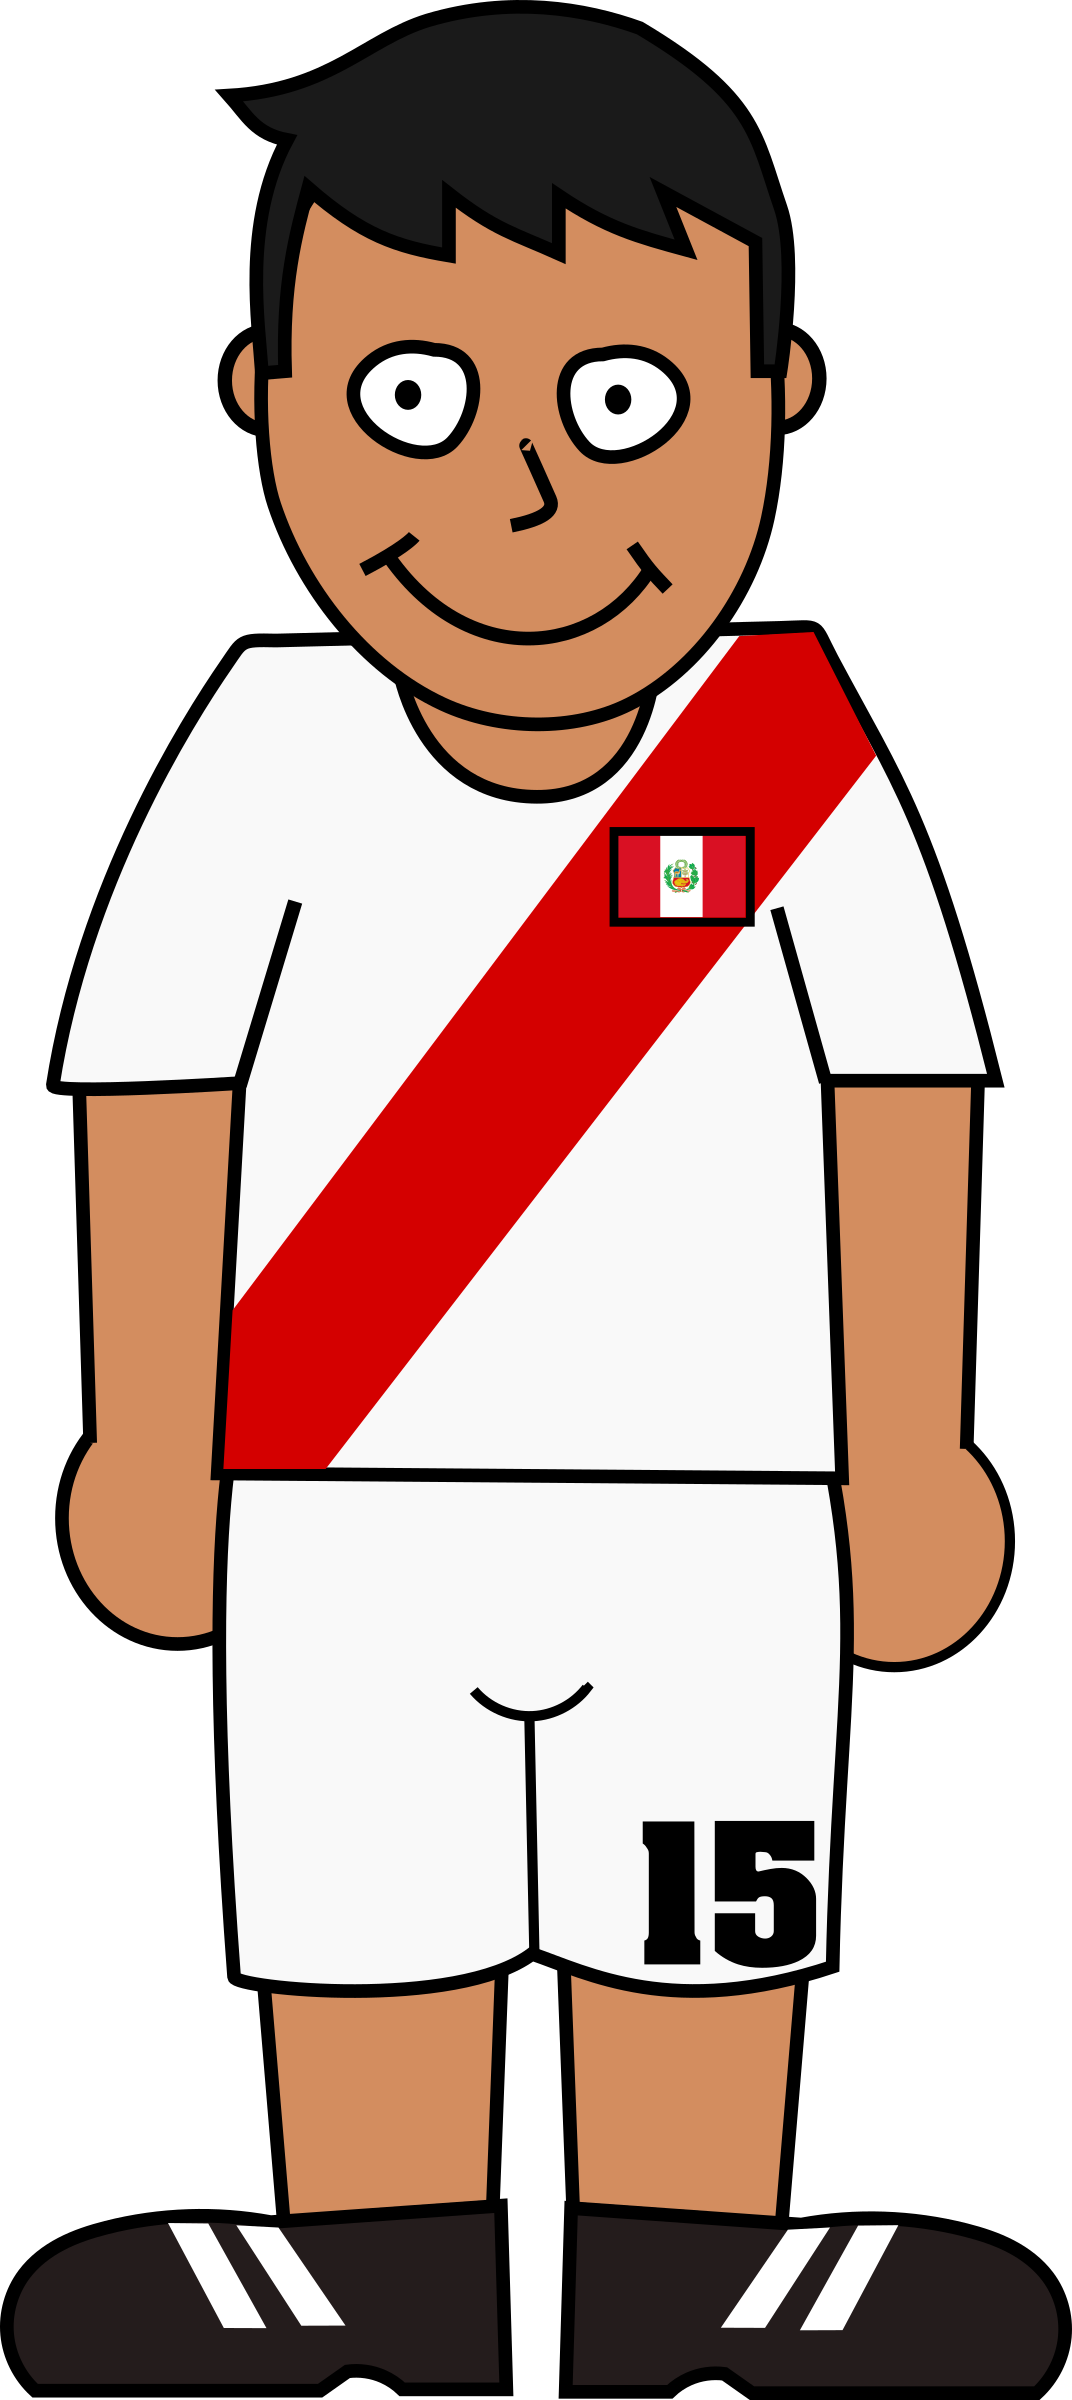 Football player peru by Bingenberg